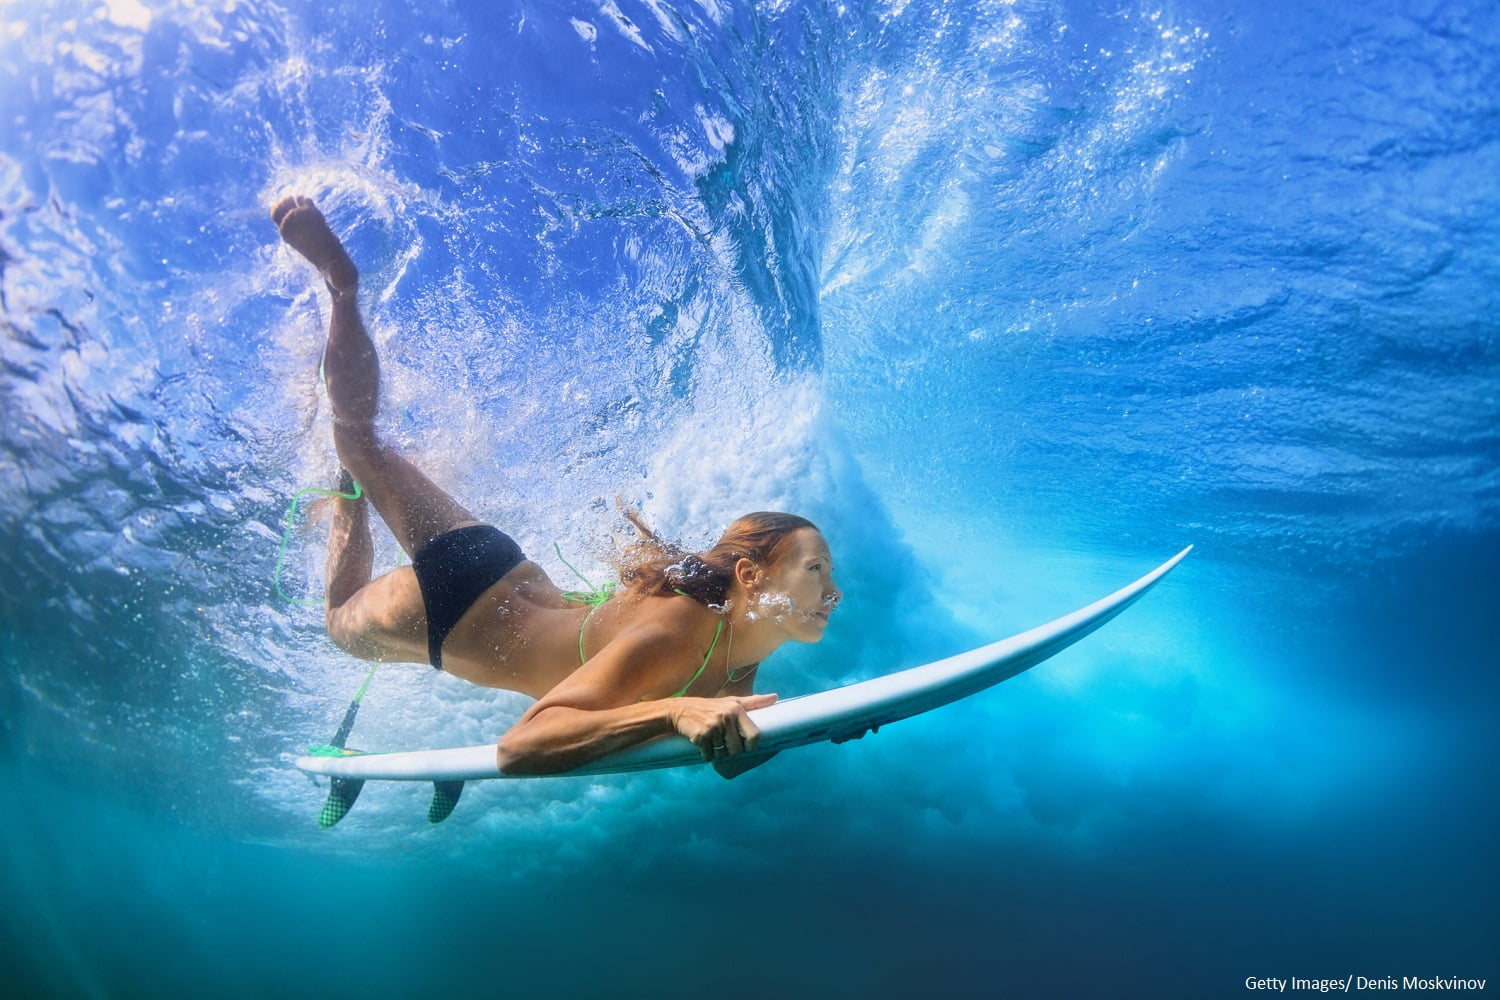 Girl diving underwater with a surfboard at one of the best Maui surfing spots